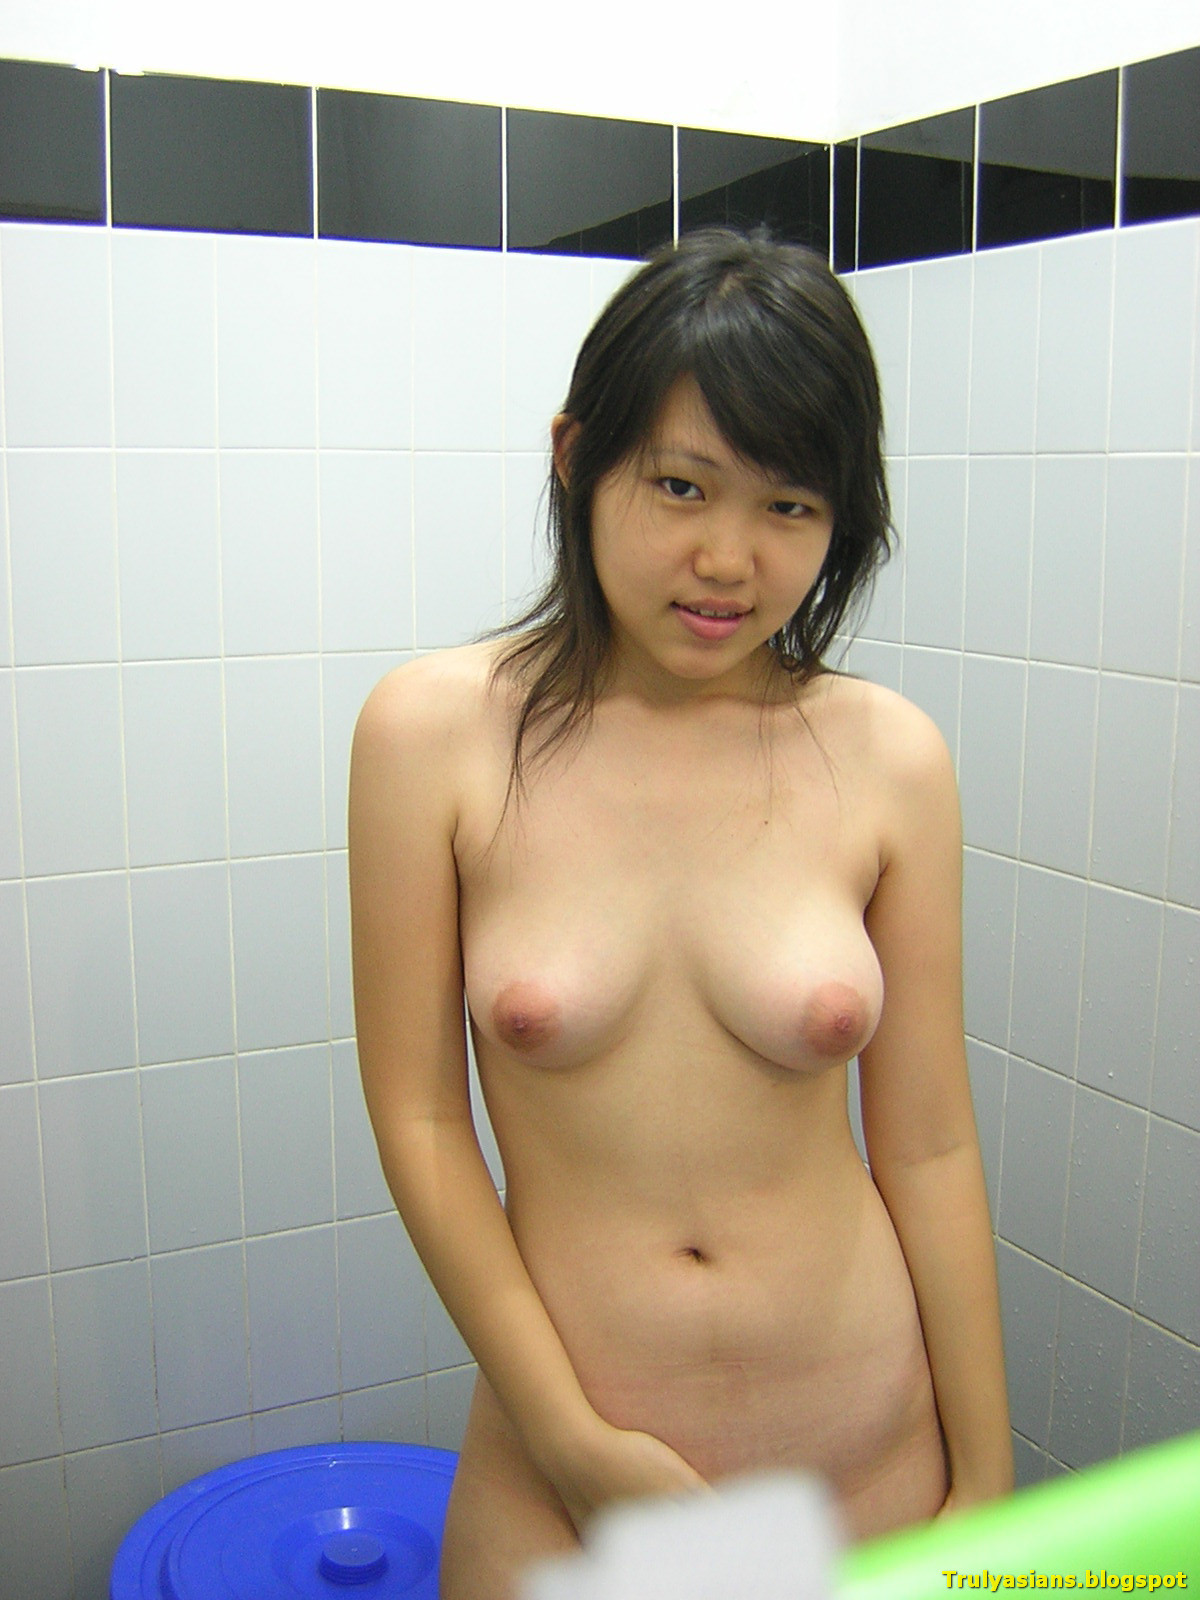 fake korean girl nude picture